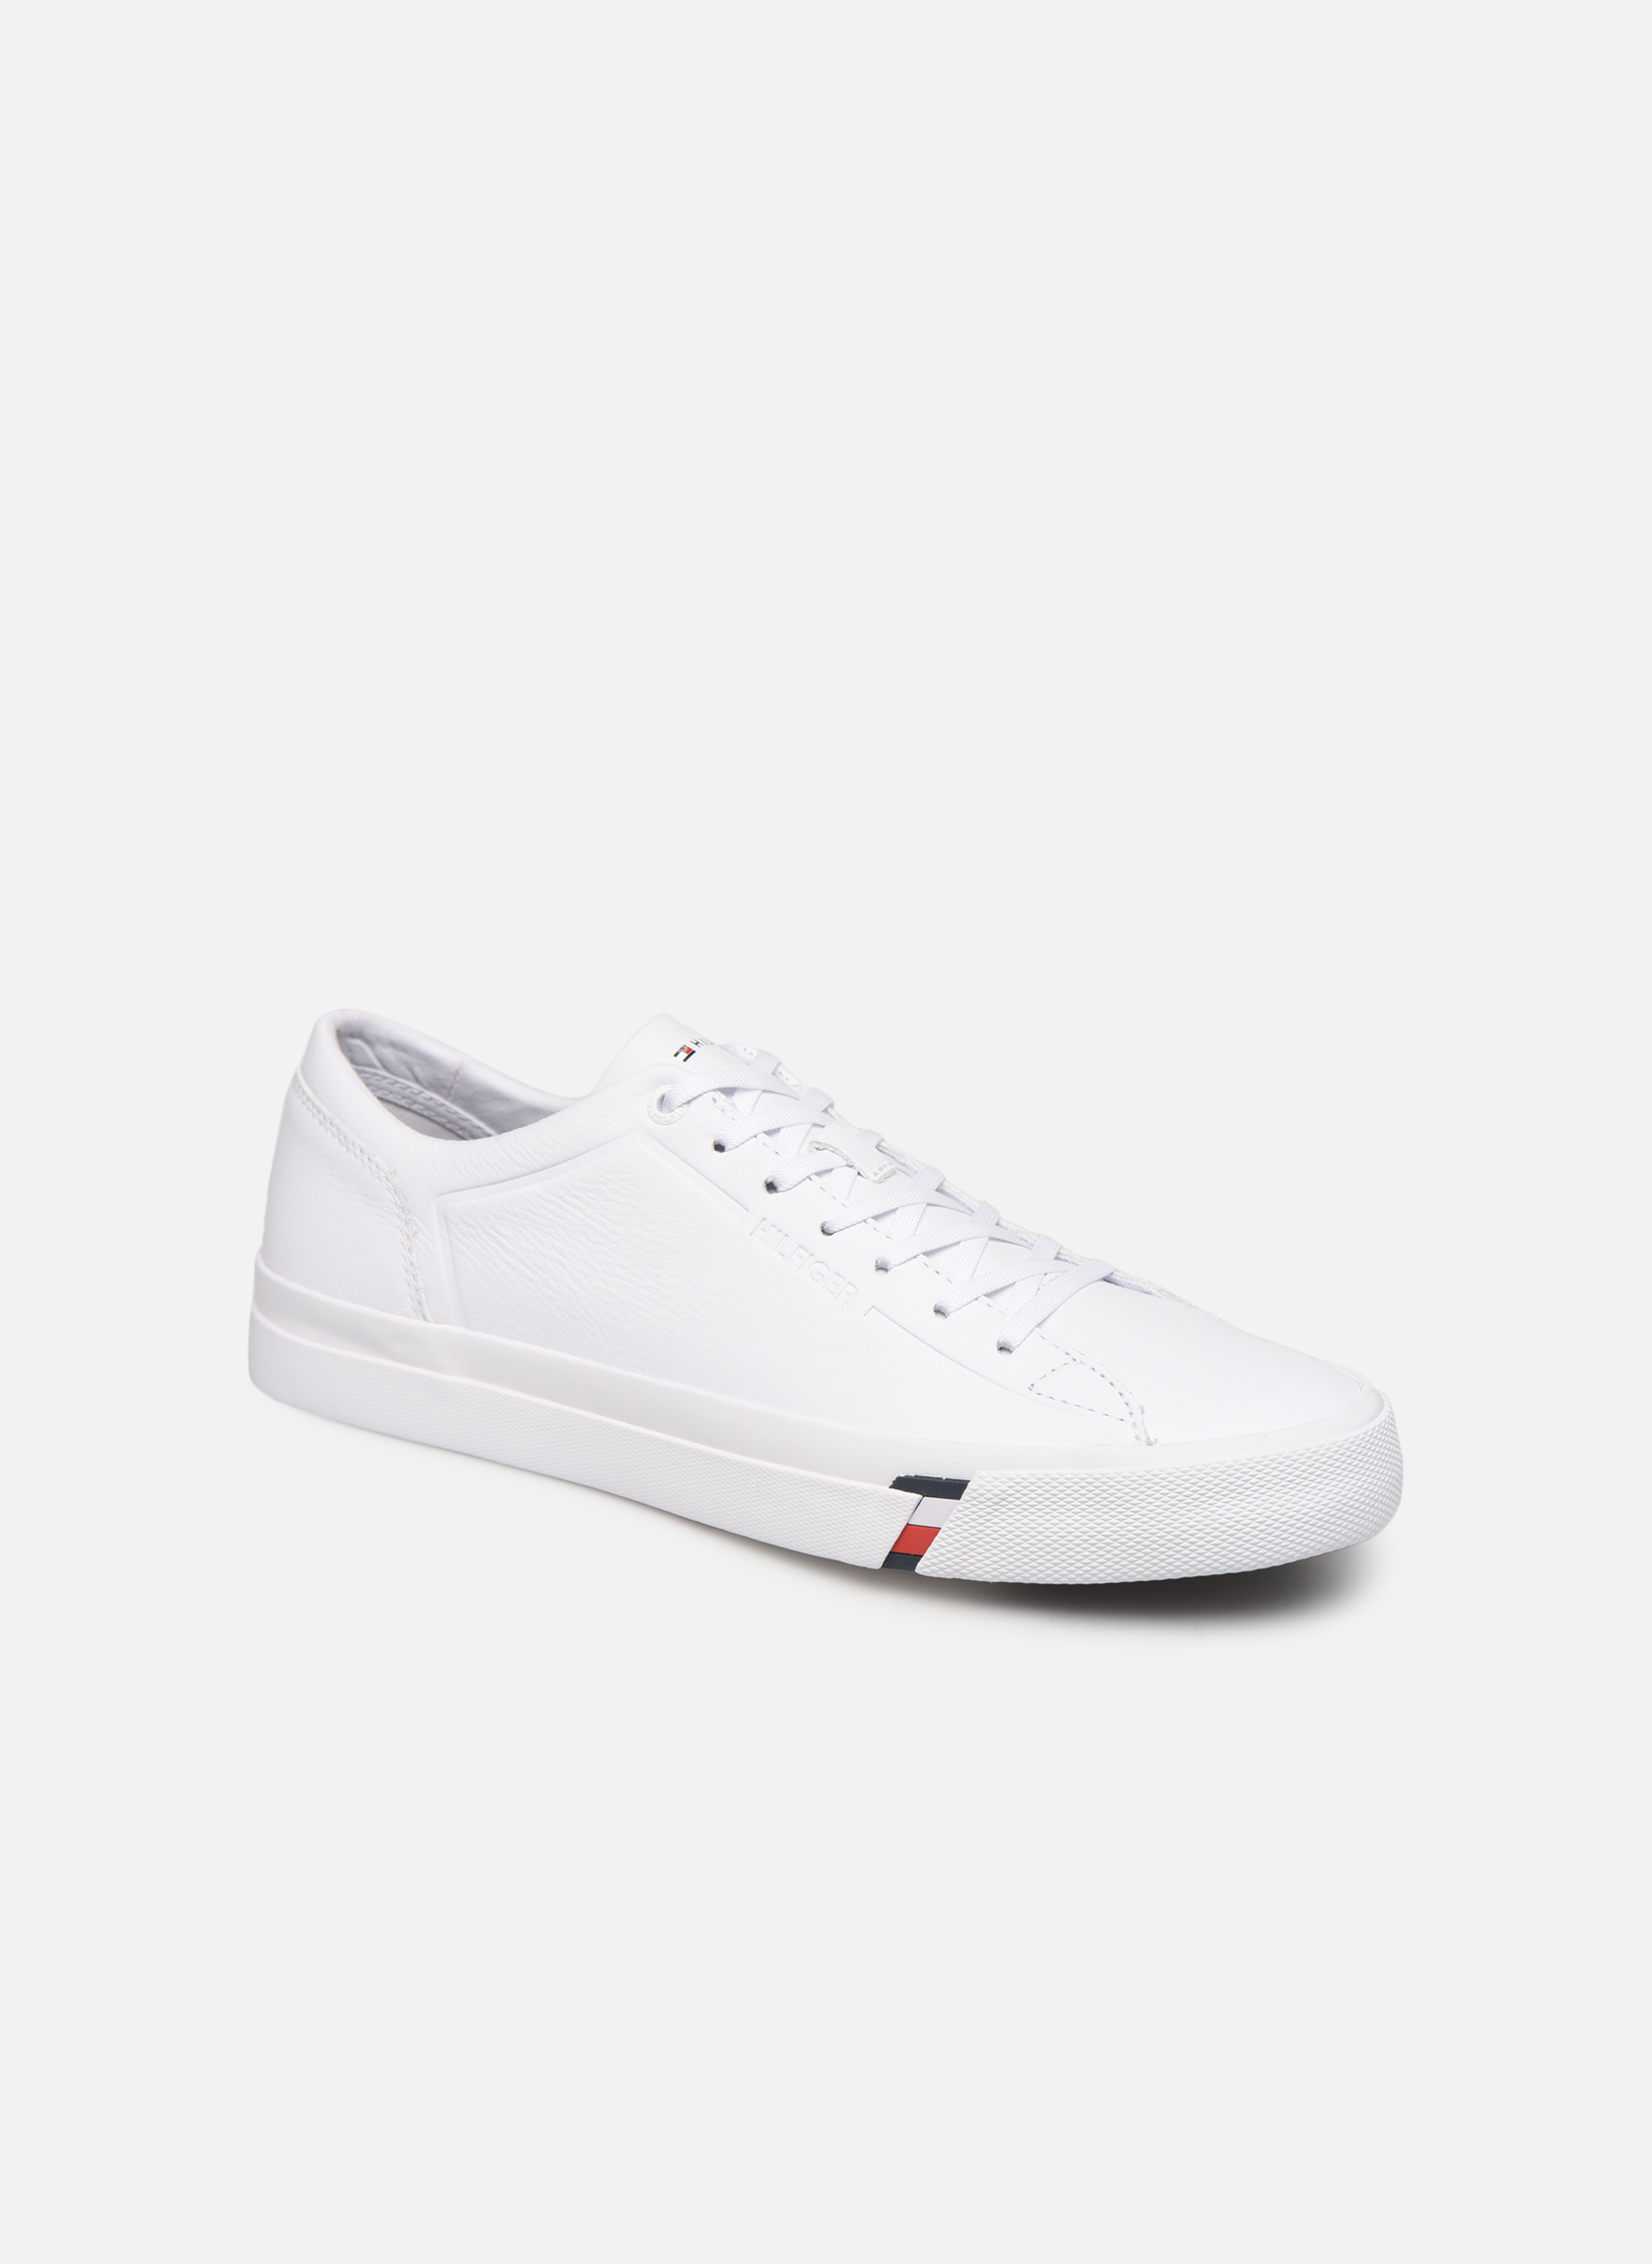 Sneakers Tommy Hilfiger Wit